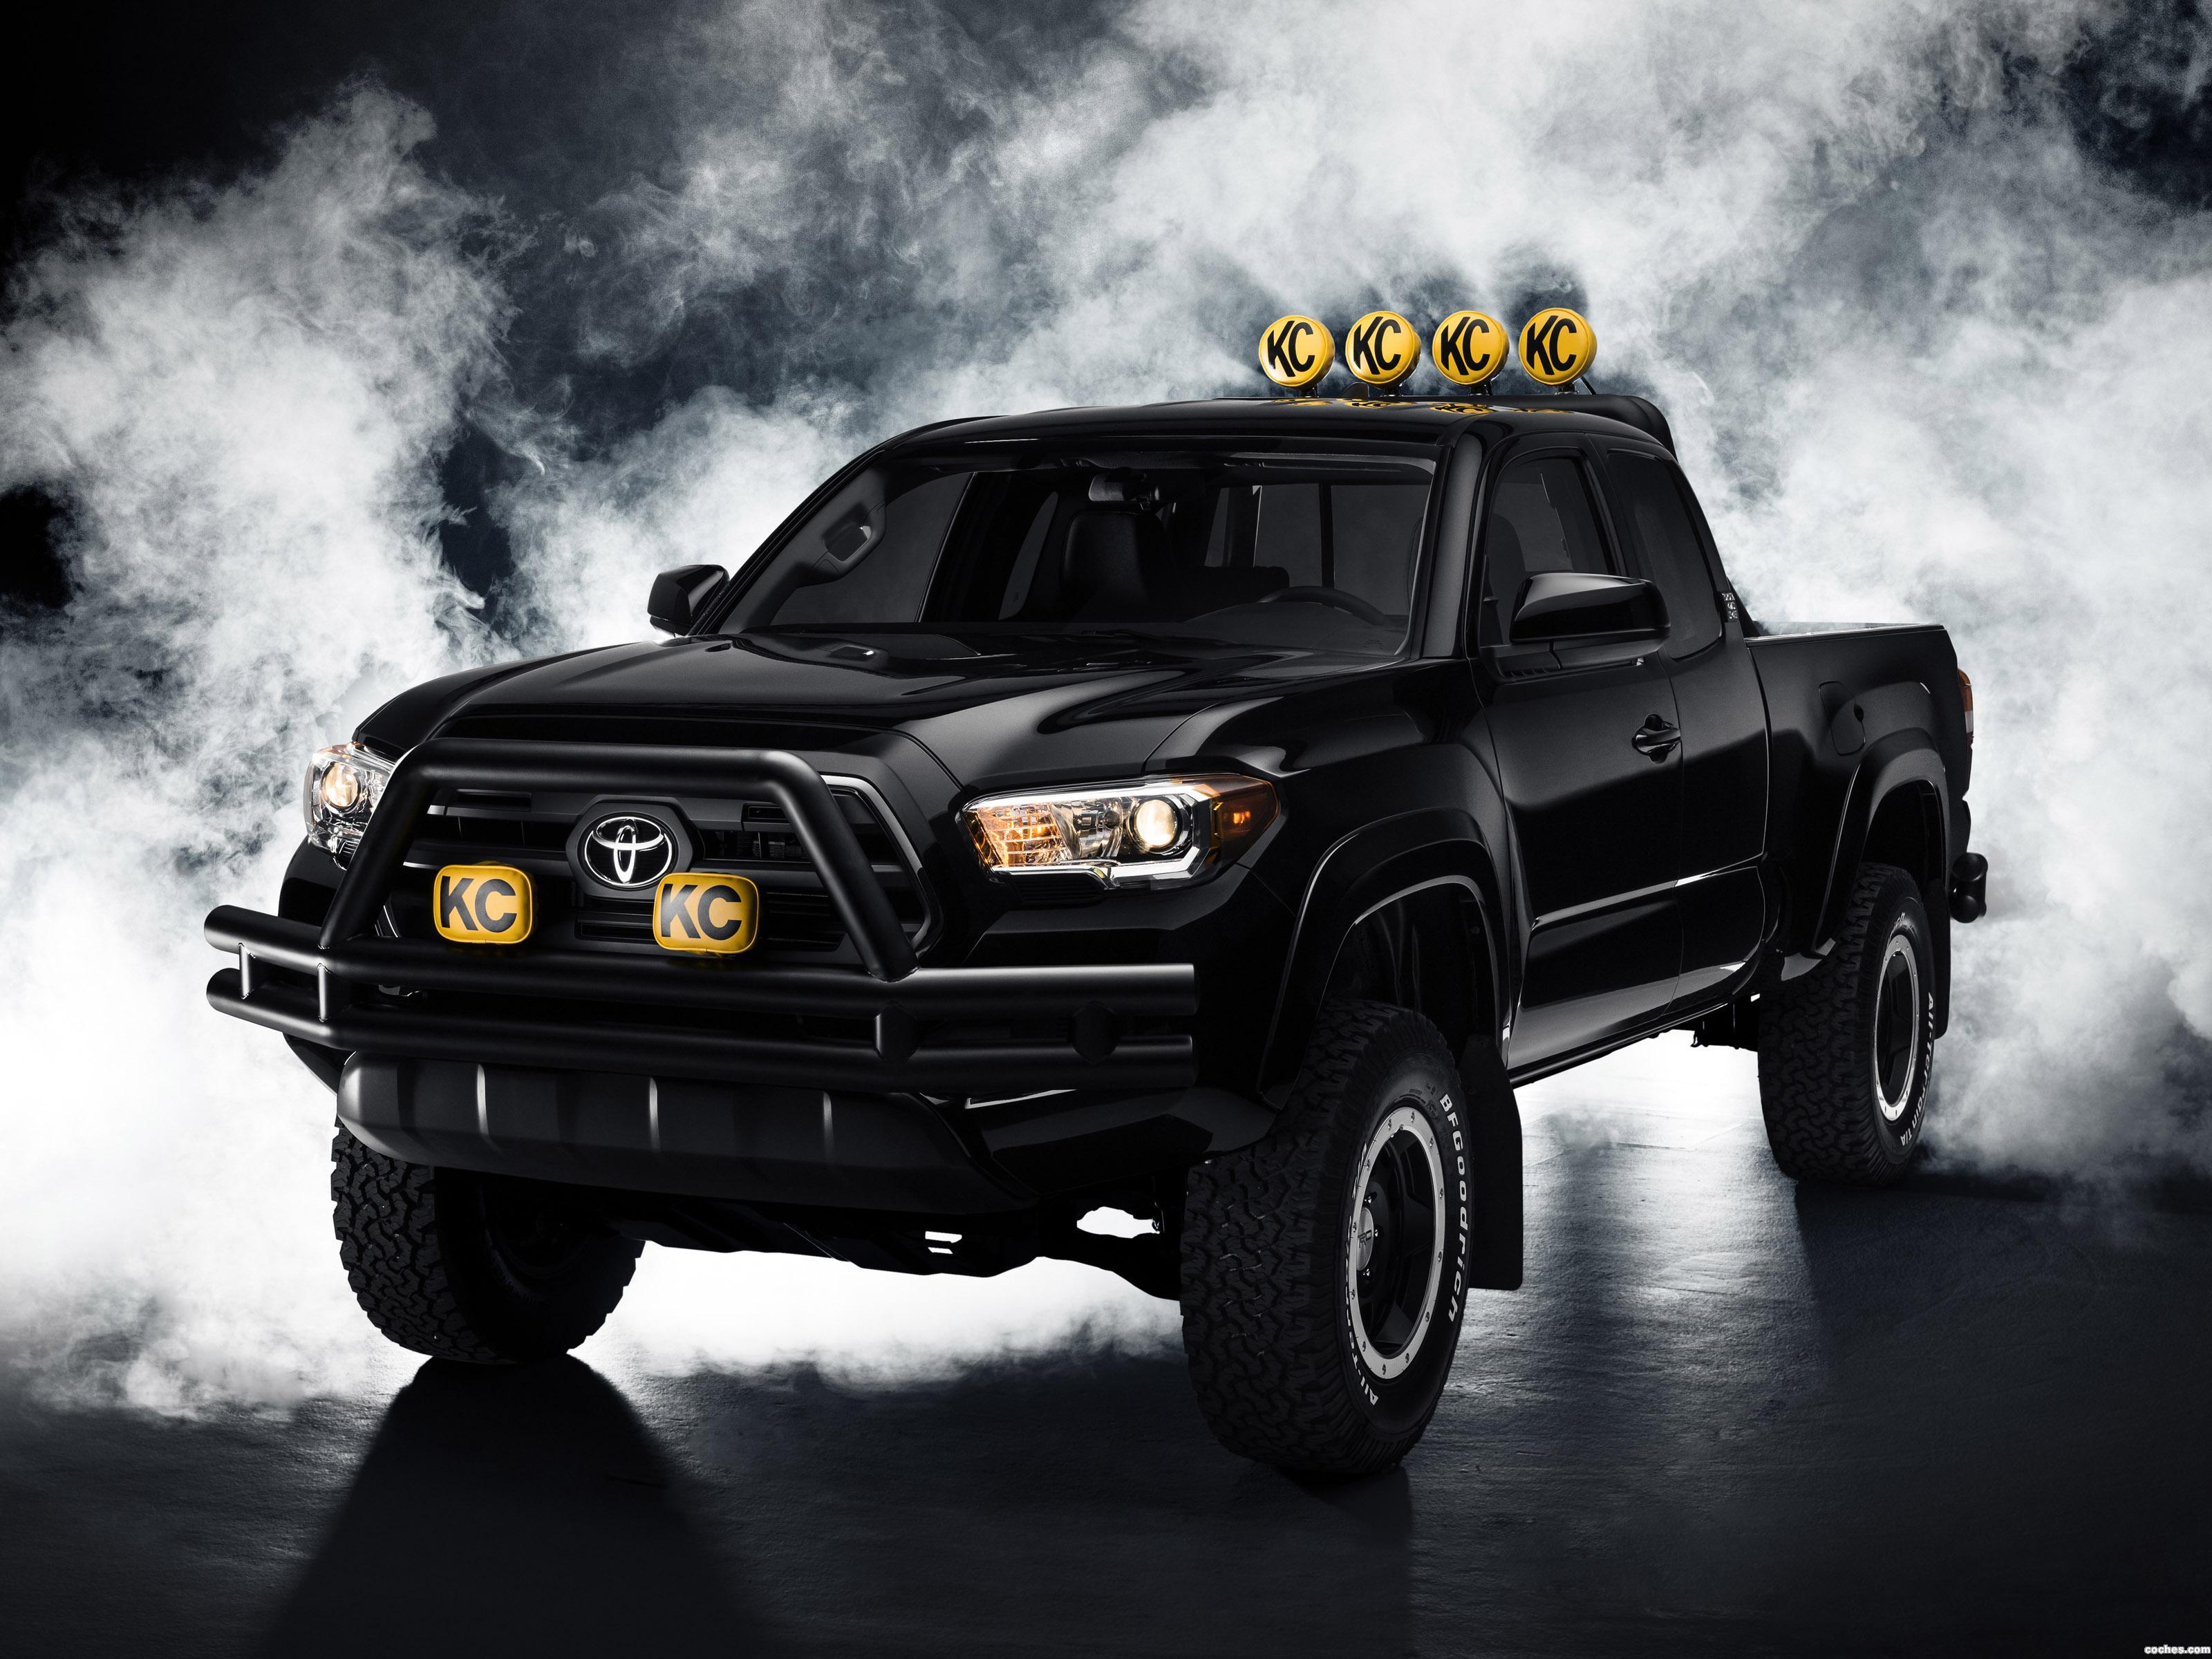 Foto 0 de Toyota Tacoma Back To The Future Concept 2015